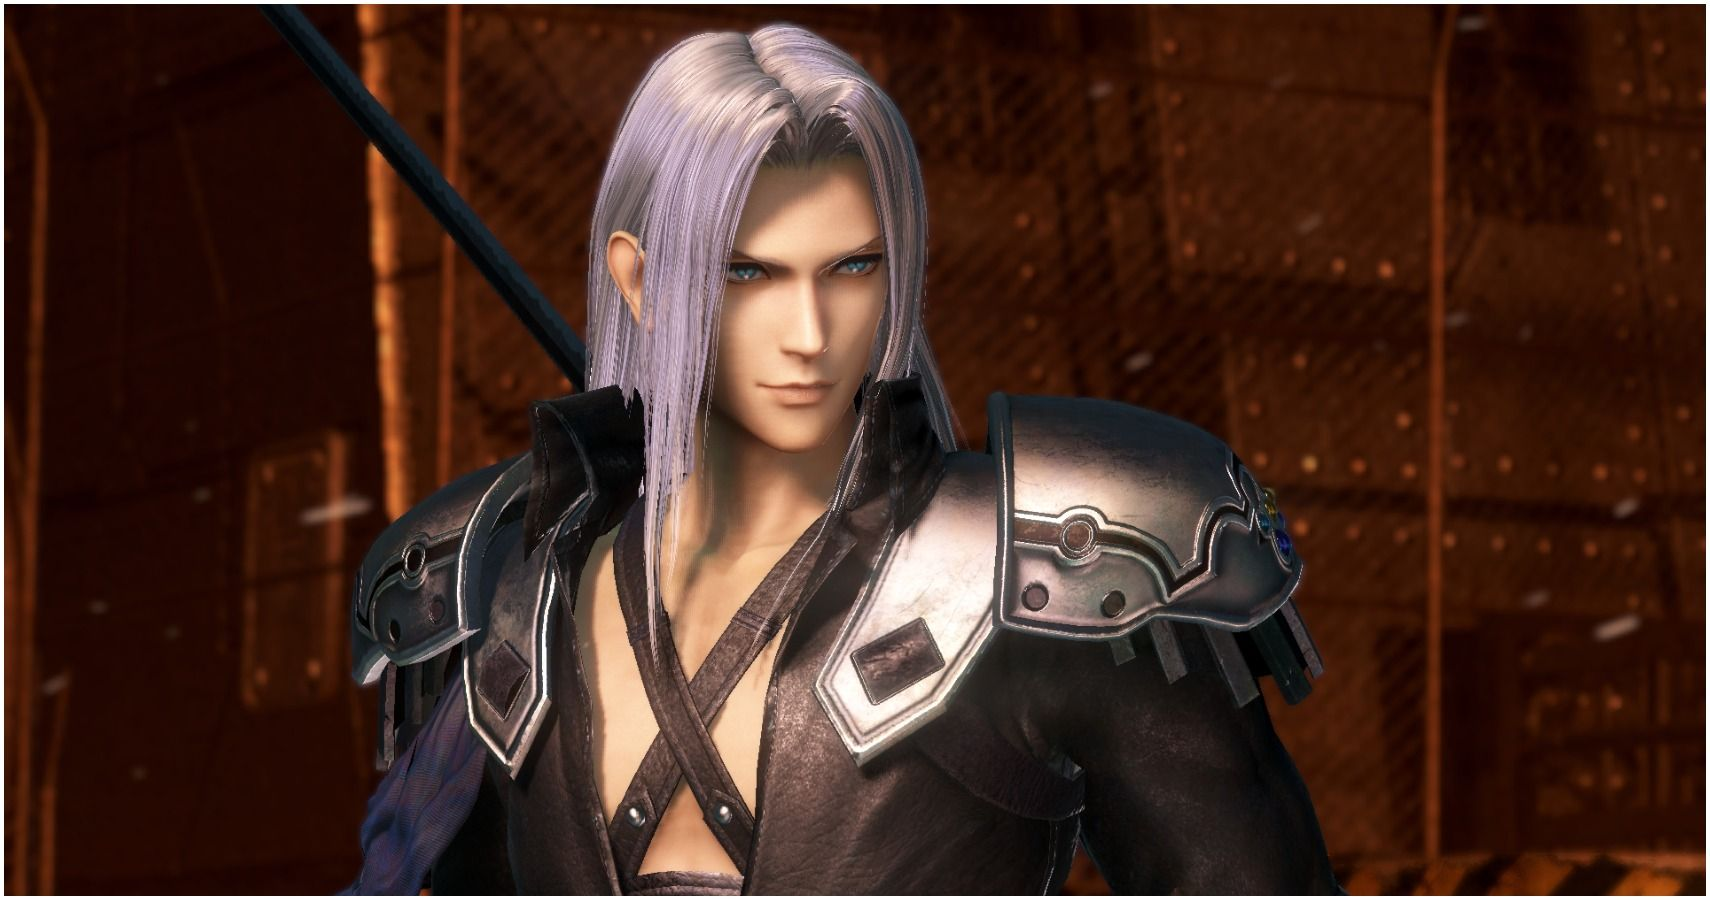 Final Fantasy: 10 Main Bosses That Hurt The Games (And 10 That Saved Them)